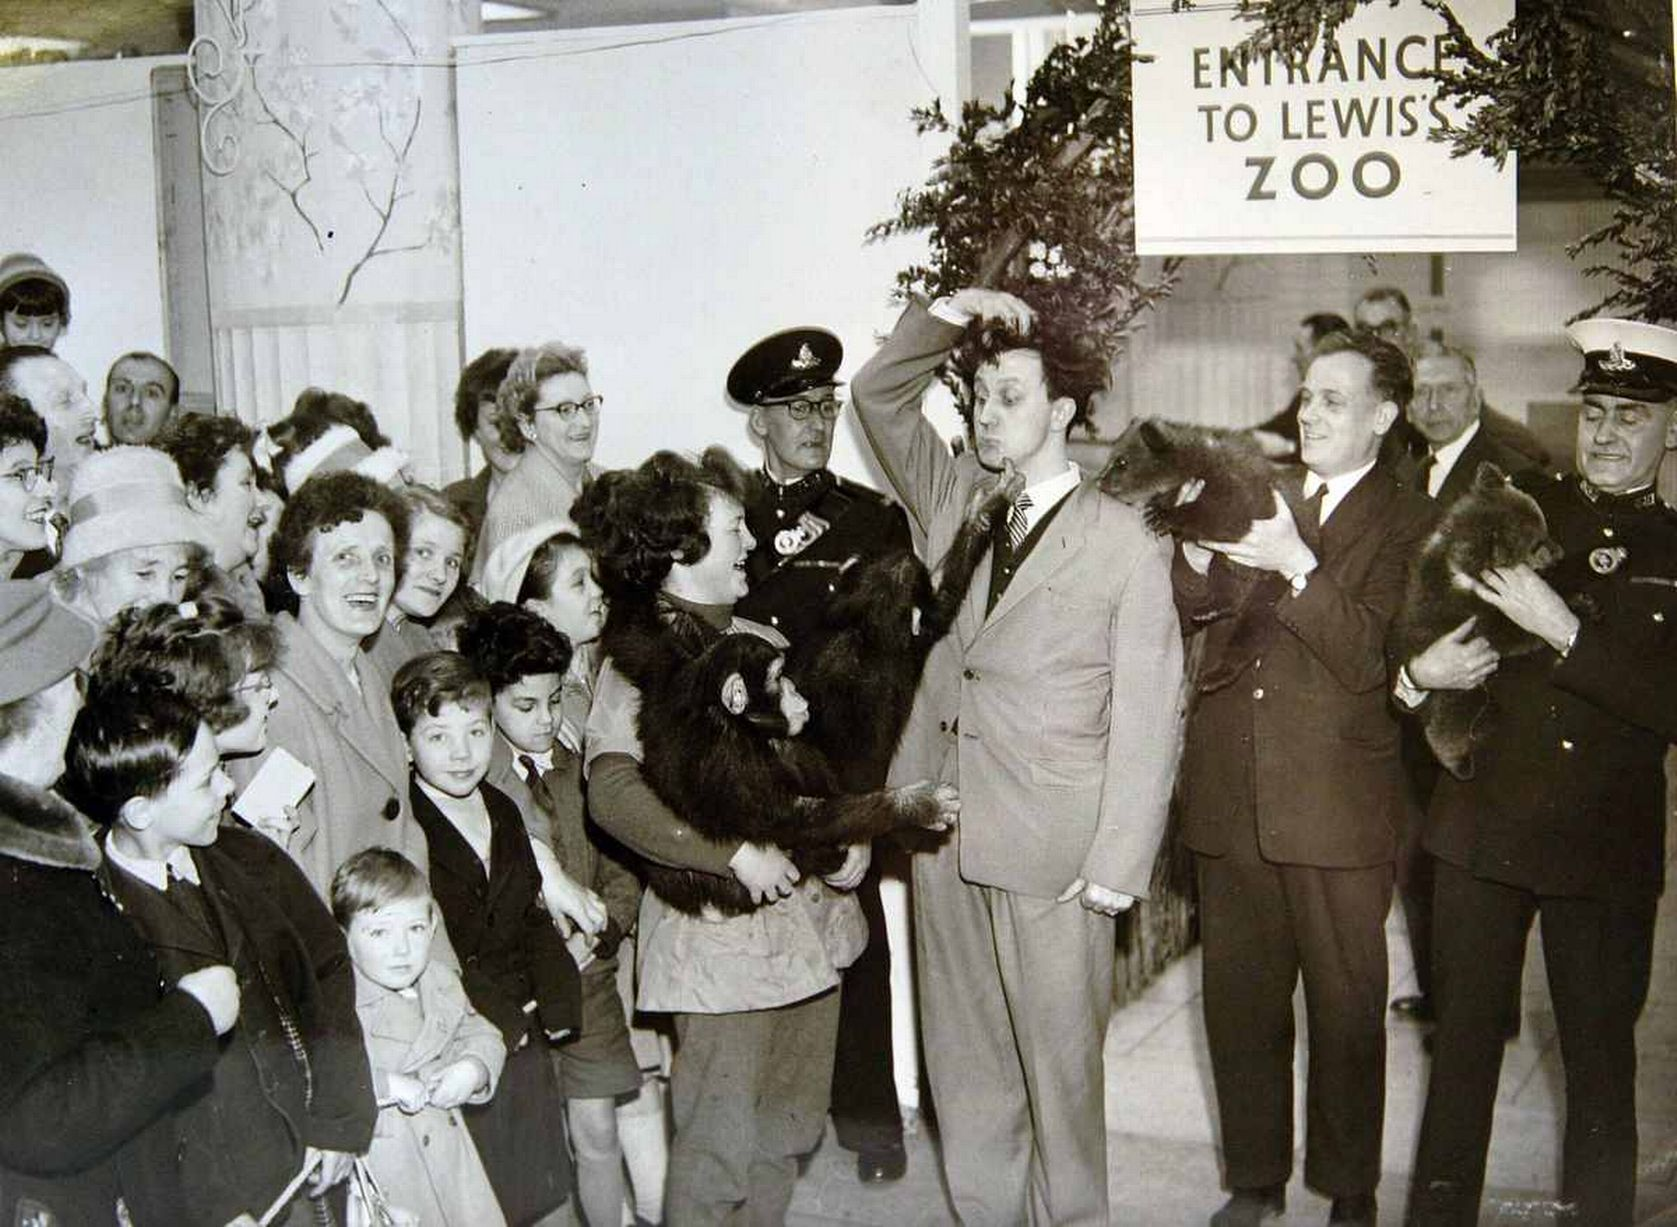 Lewis's department store in Liverpool. Ken Dodd at the entrance to the Zoo in the 1960's